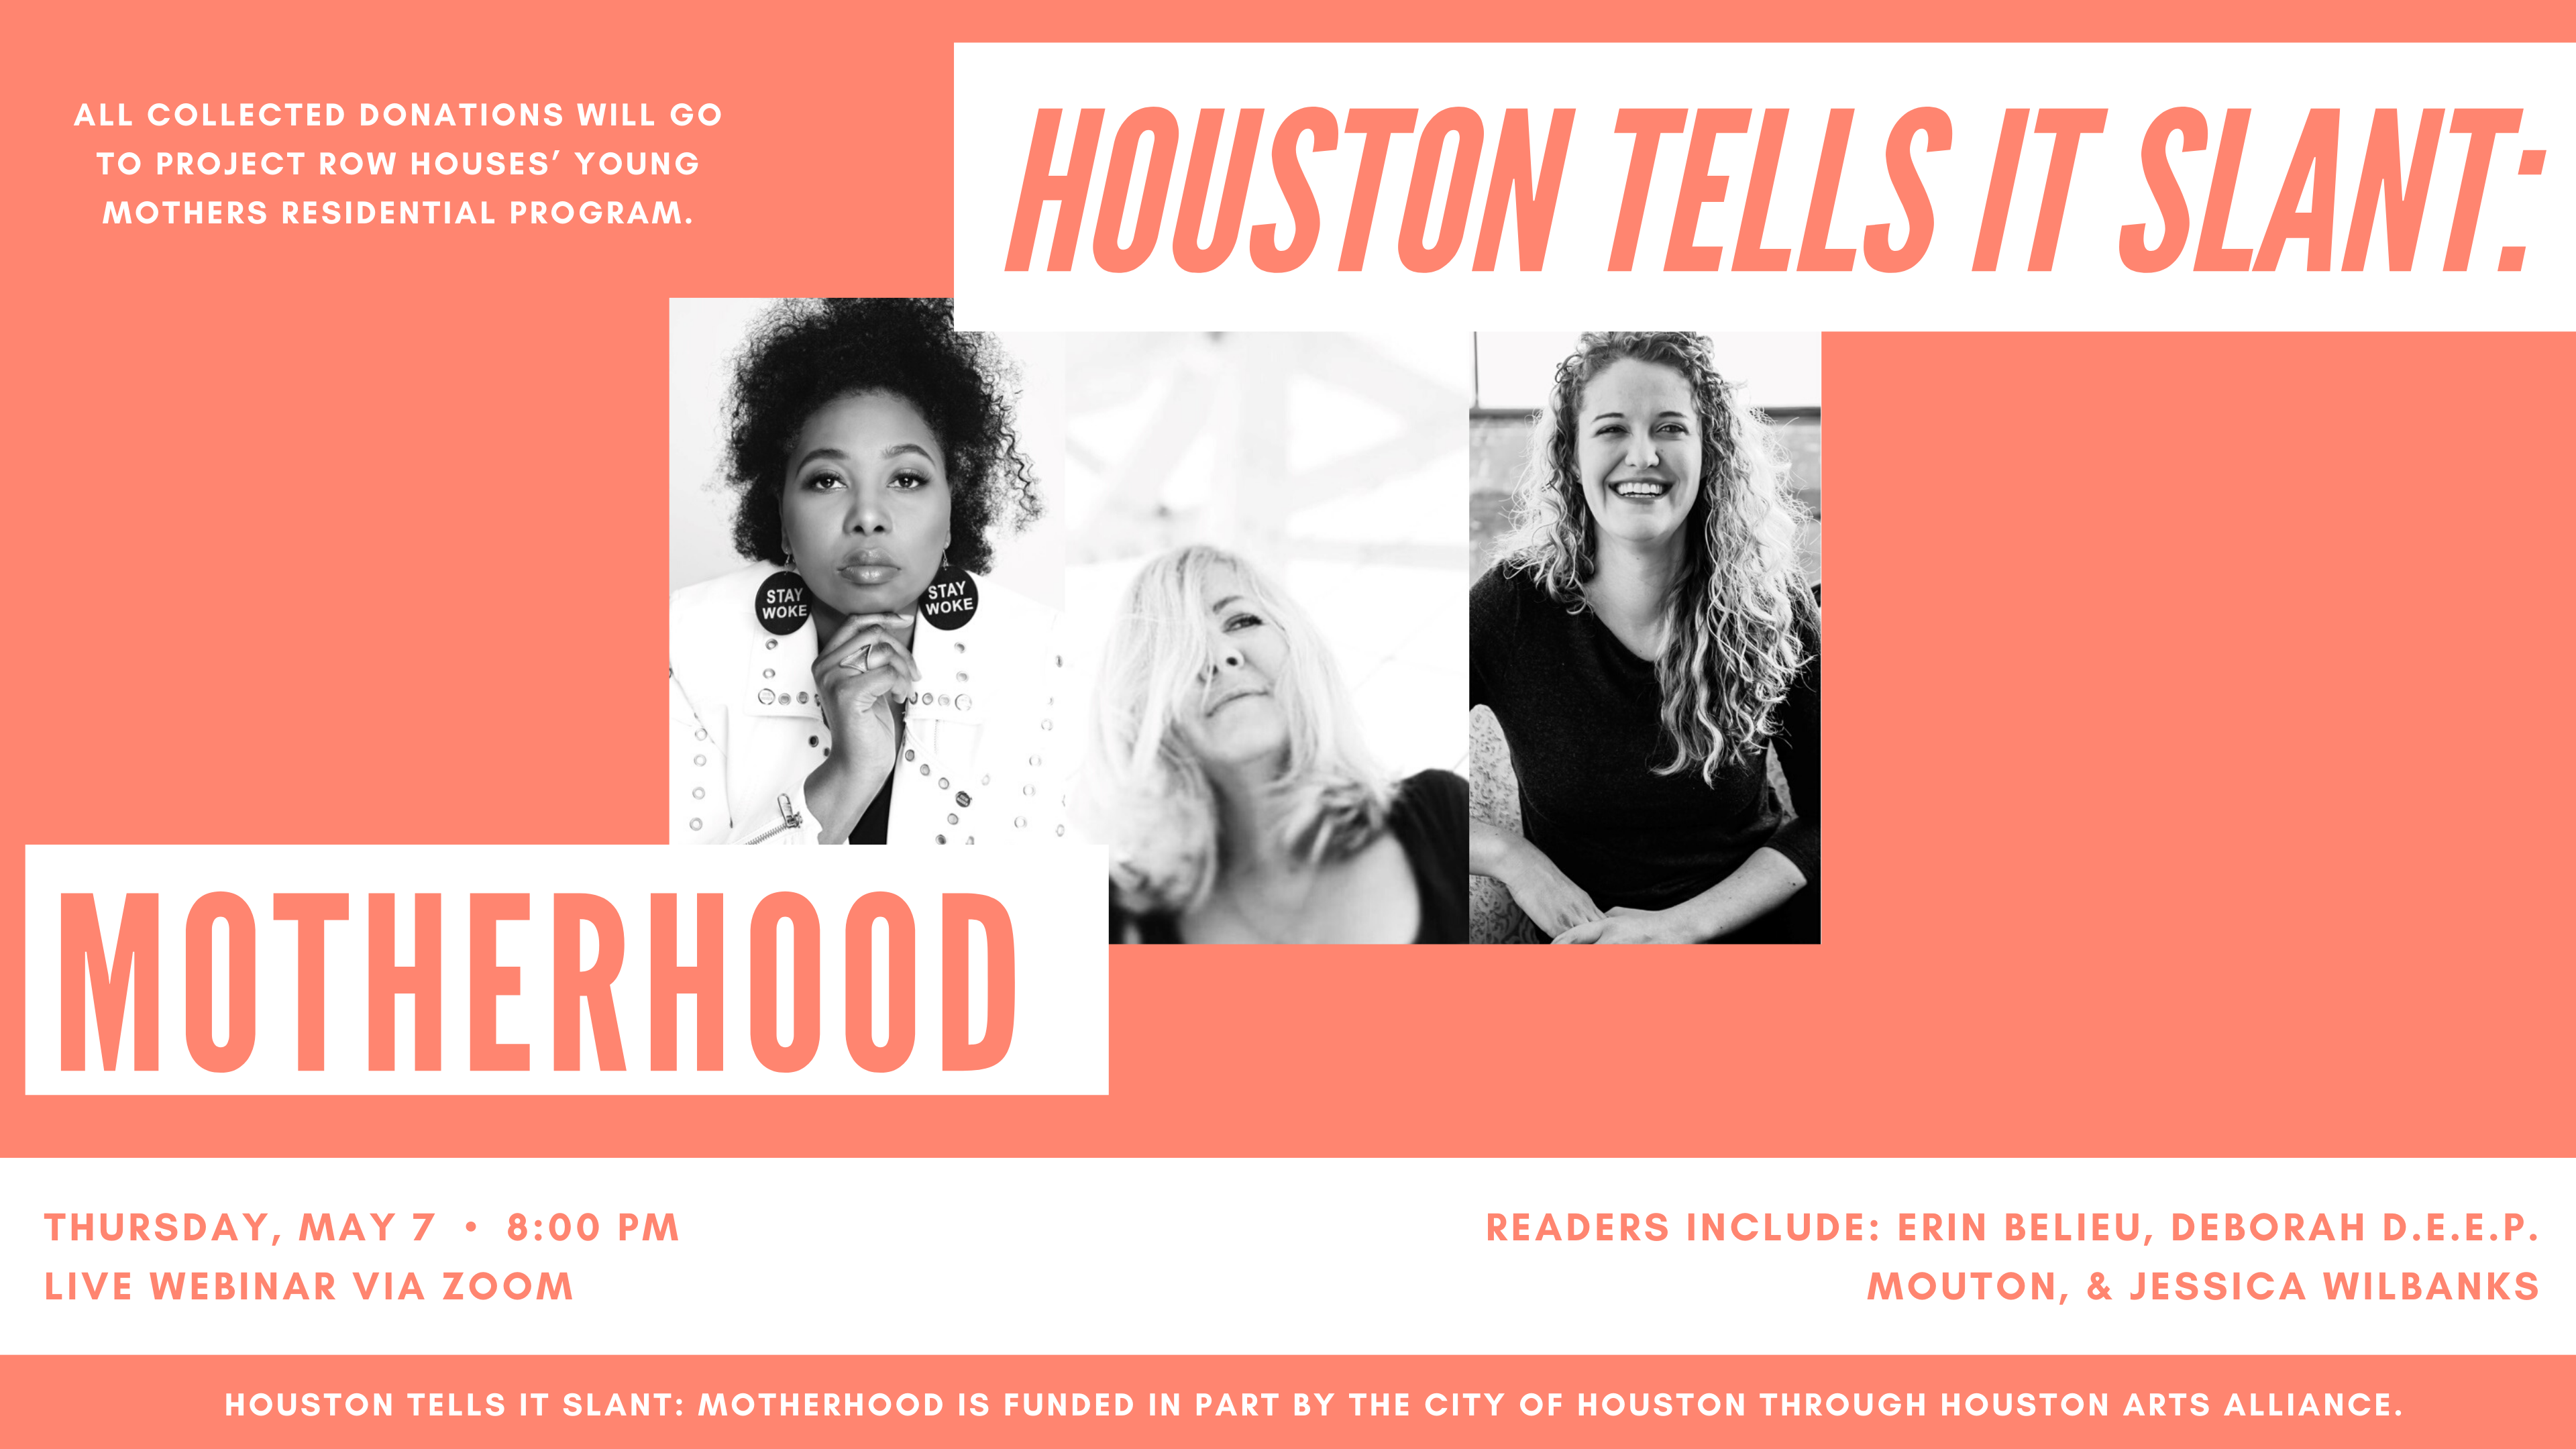 Houston Tells It Slant: Motherhood